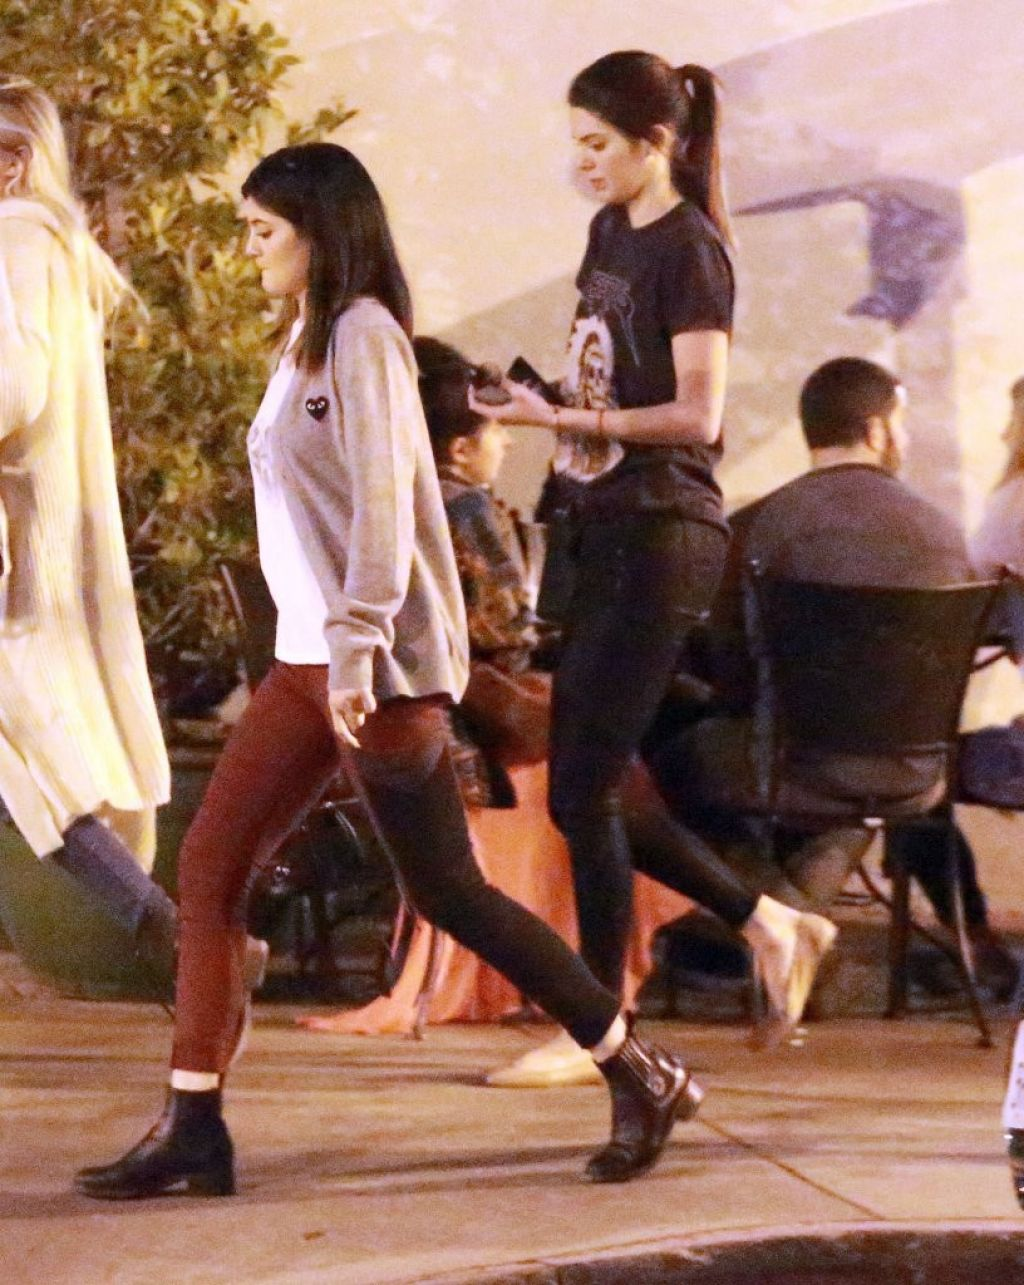 Kendall & Kylie Jenner Street Style - Leaving Urth Caffe in West Hollywood, January 2014